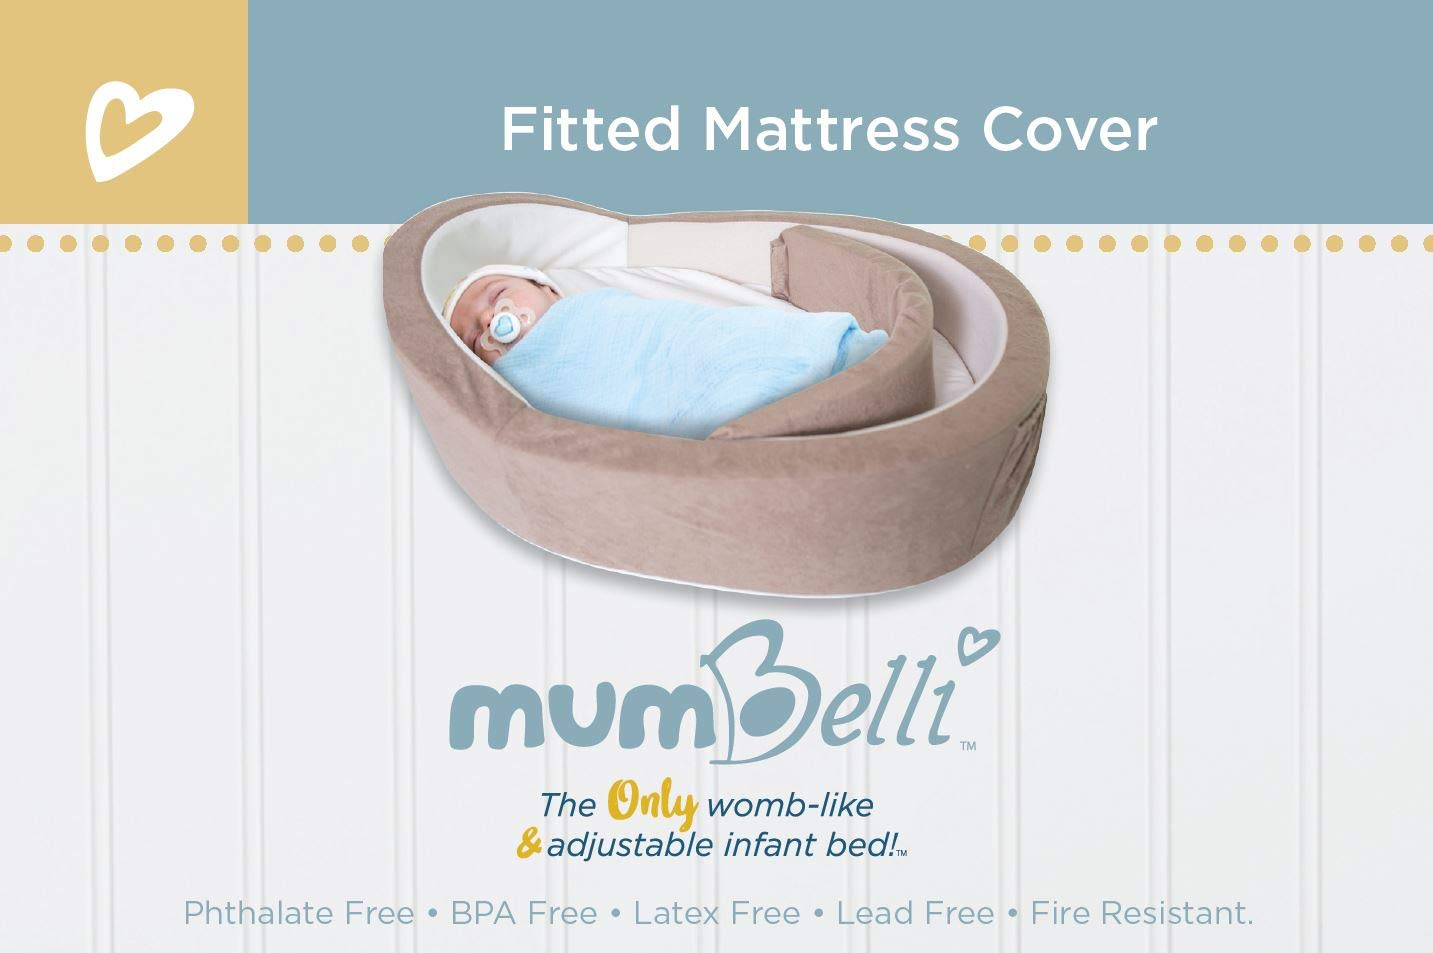 Mumbelli - The Only Womb-Like and Adjustable Infant Bed. Replacement Mattress Pad Cover